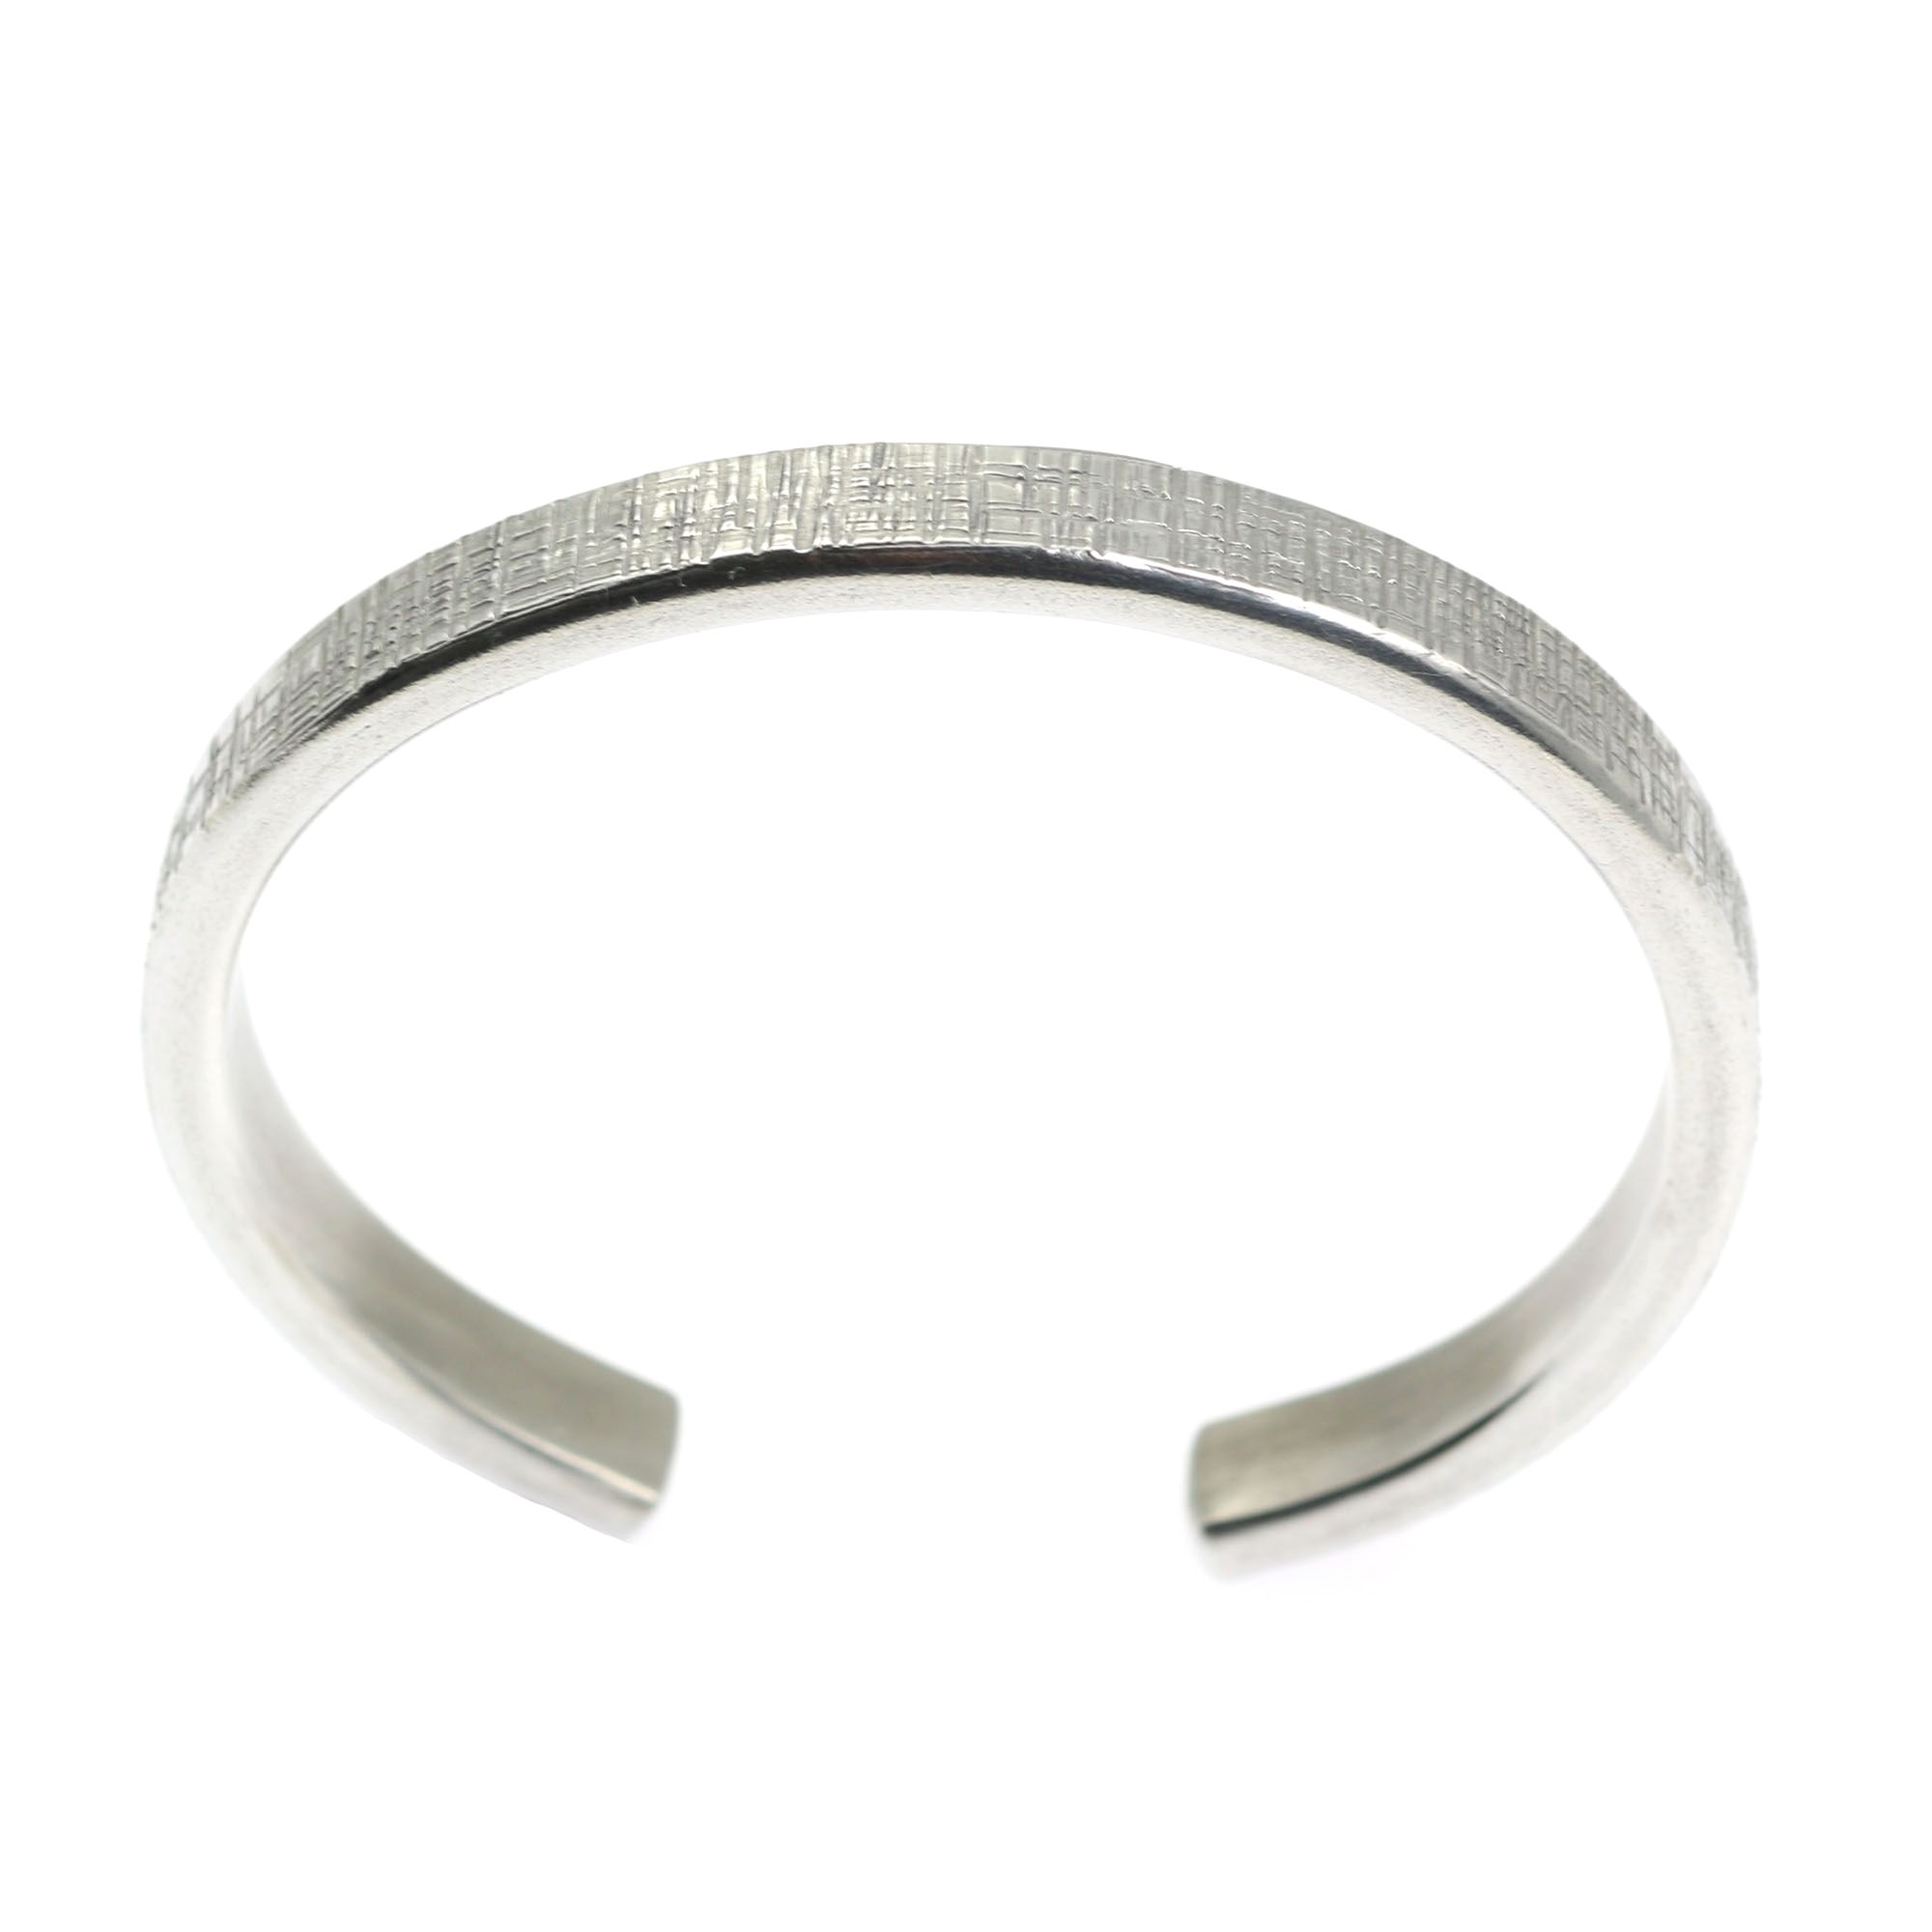 New awesome mm thin linen silver tone cuff bracelet highlighted by